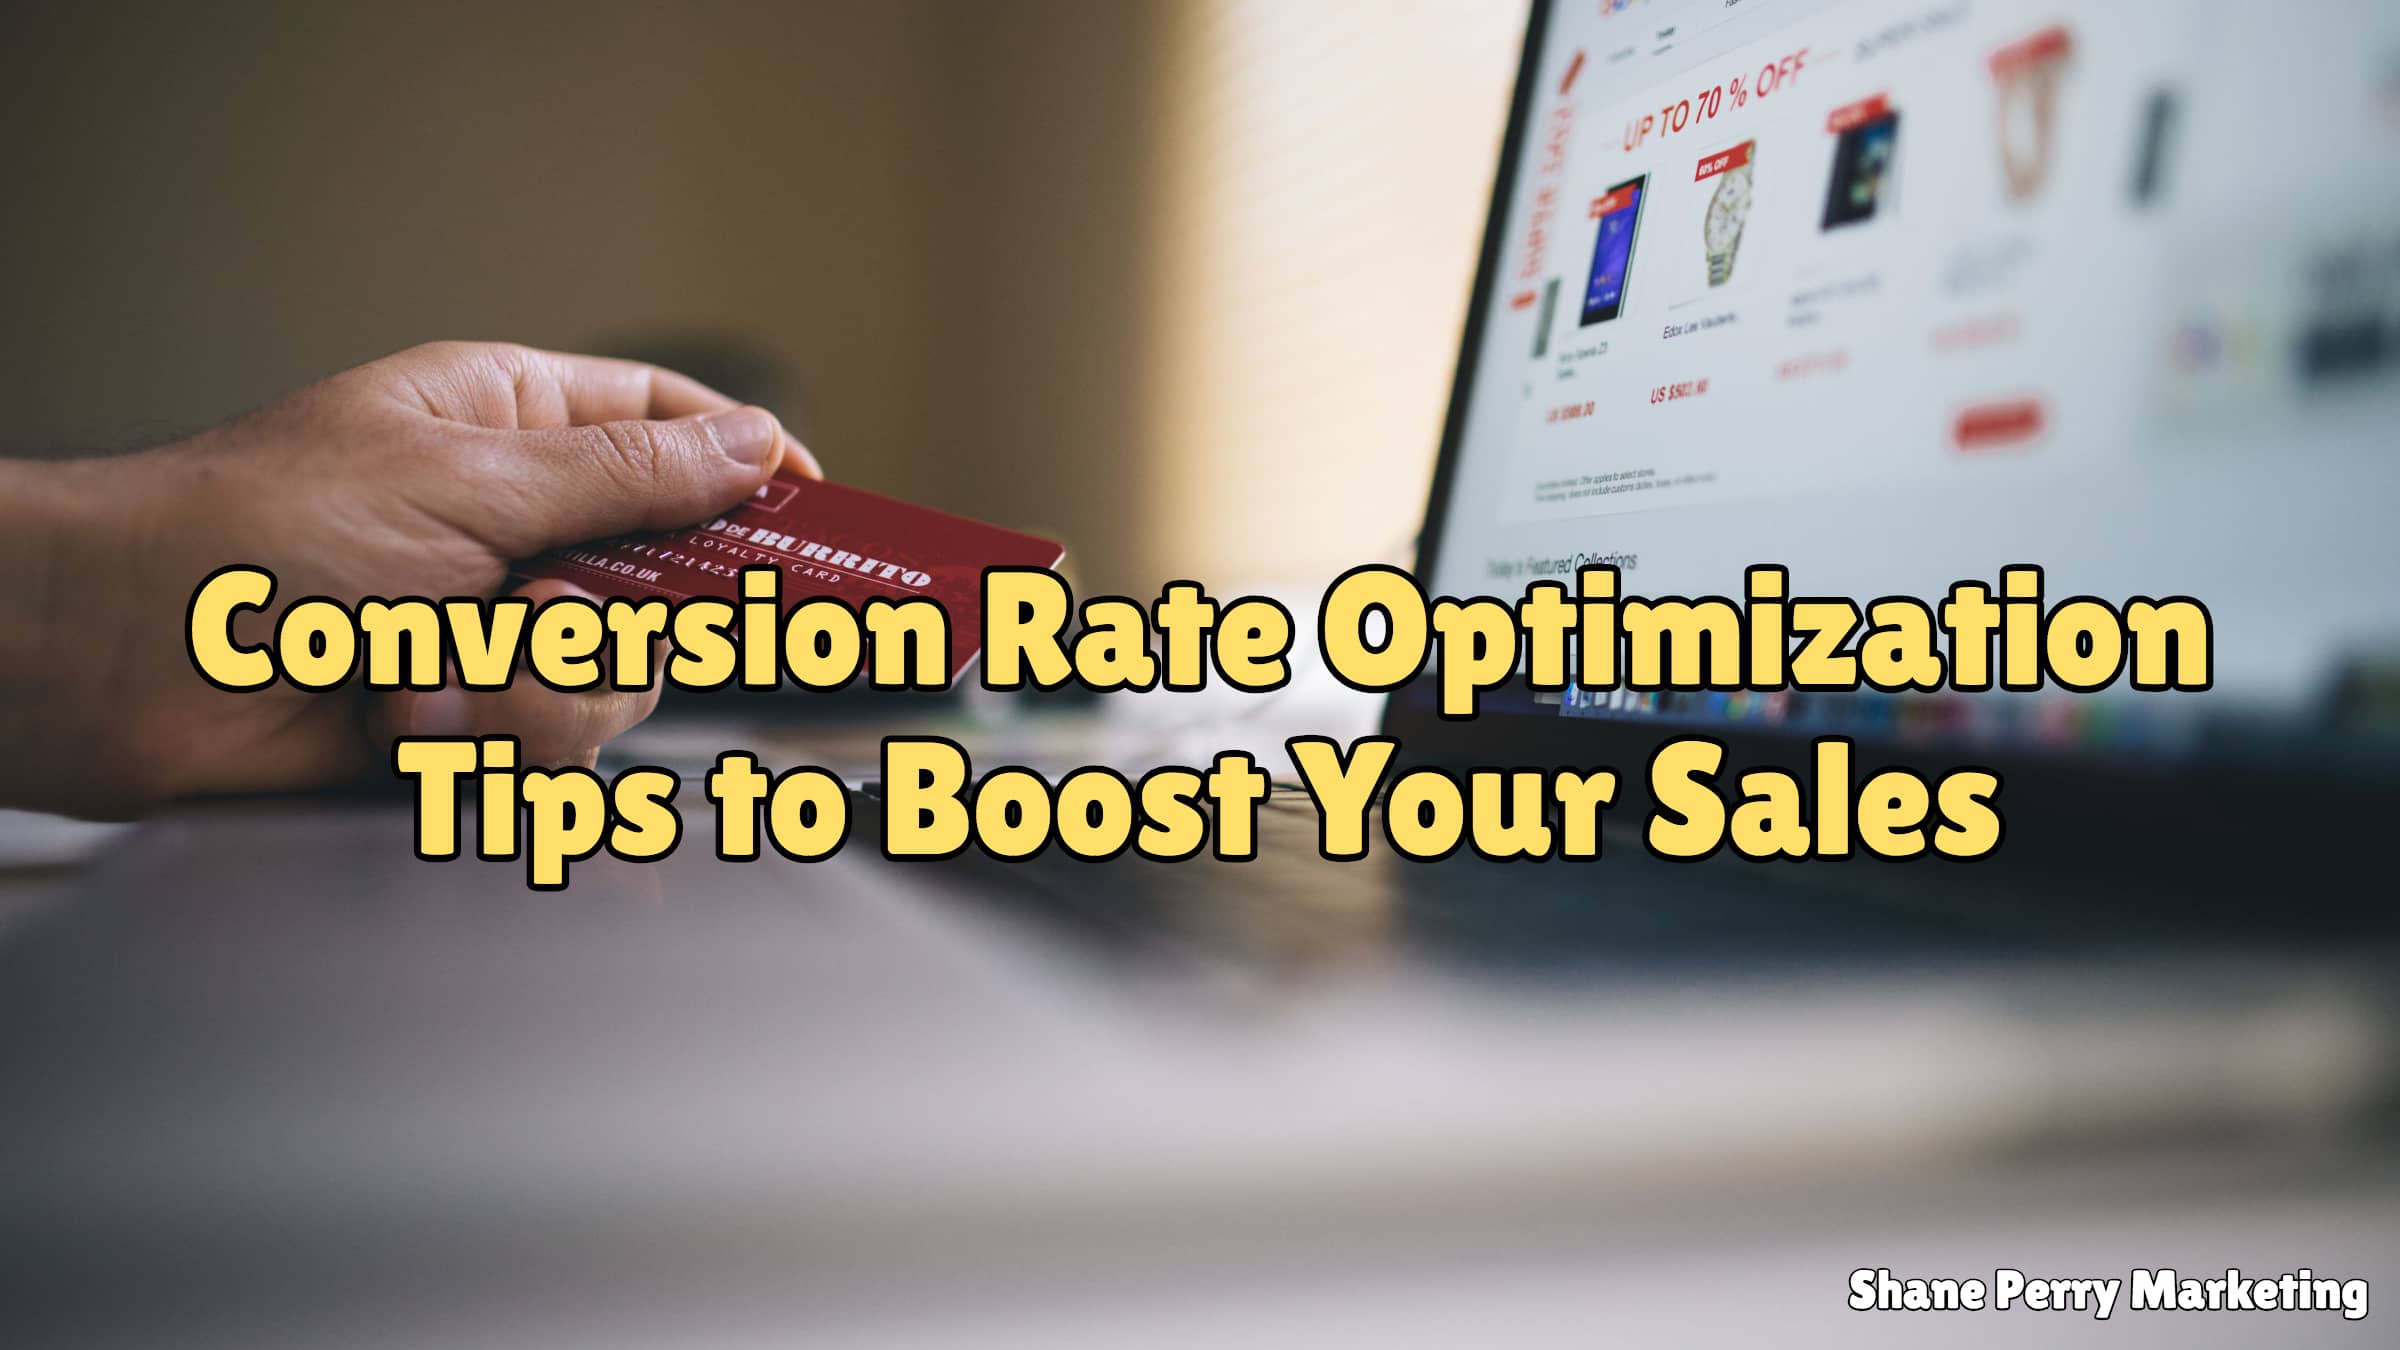 Conversion Rate Optimization Tips to Boost Your Sales